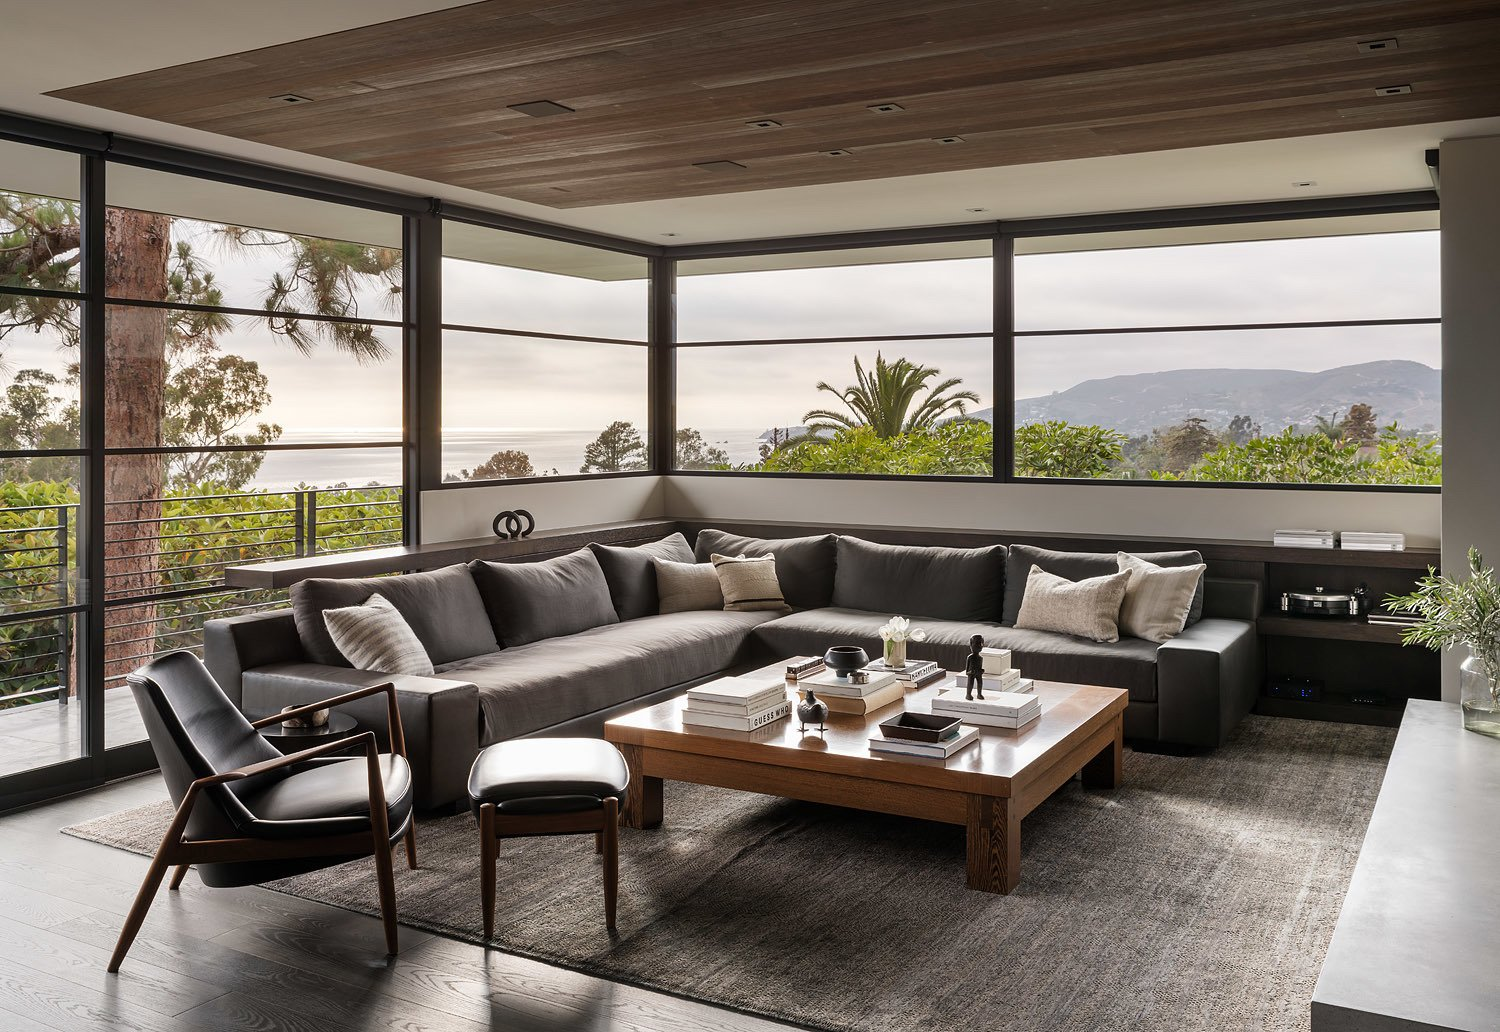 Living Room, Coffee Tables, Chair, Sofa, Ottomans, Ceiling Lighting, Recessed Lighting, Rug Floor, and Dark Hardwood Floor Floor-to-ceiling windows frame the stunning, panoramic view.  Photo 9 of 23 in A Southern California Midcentury Gets a Serene, Japanese-Inspired Treatment